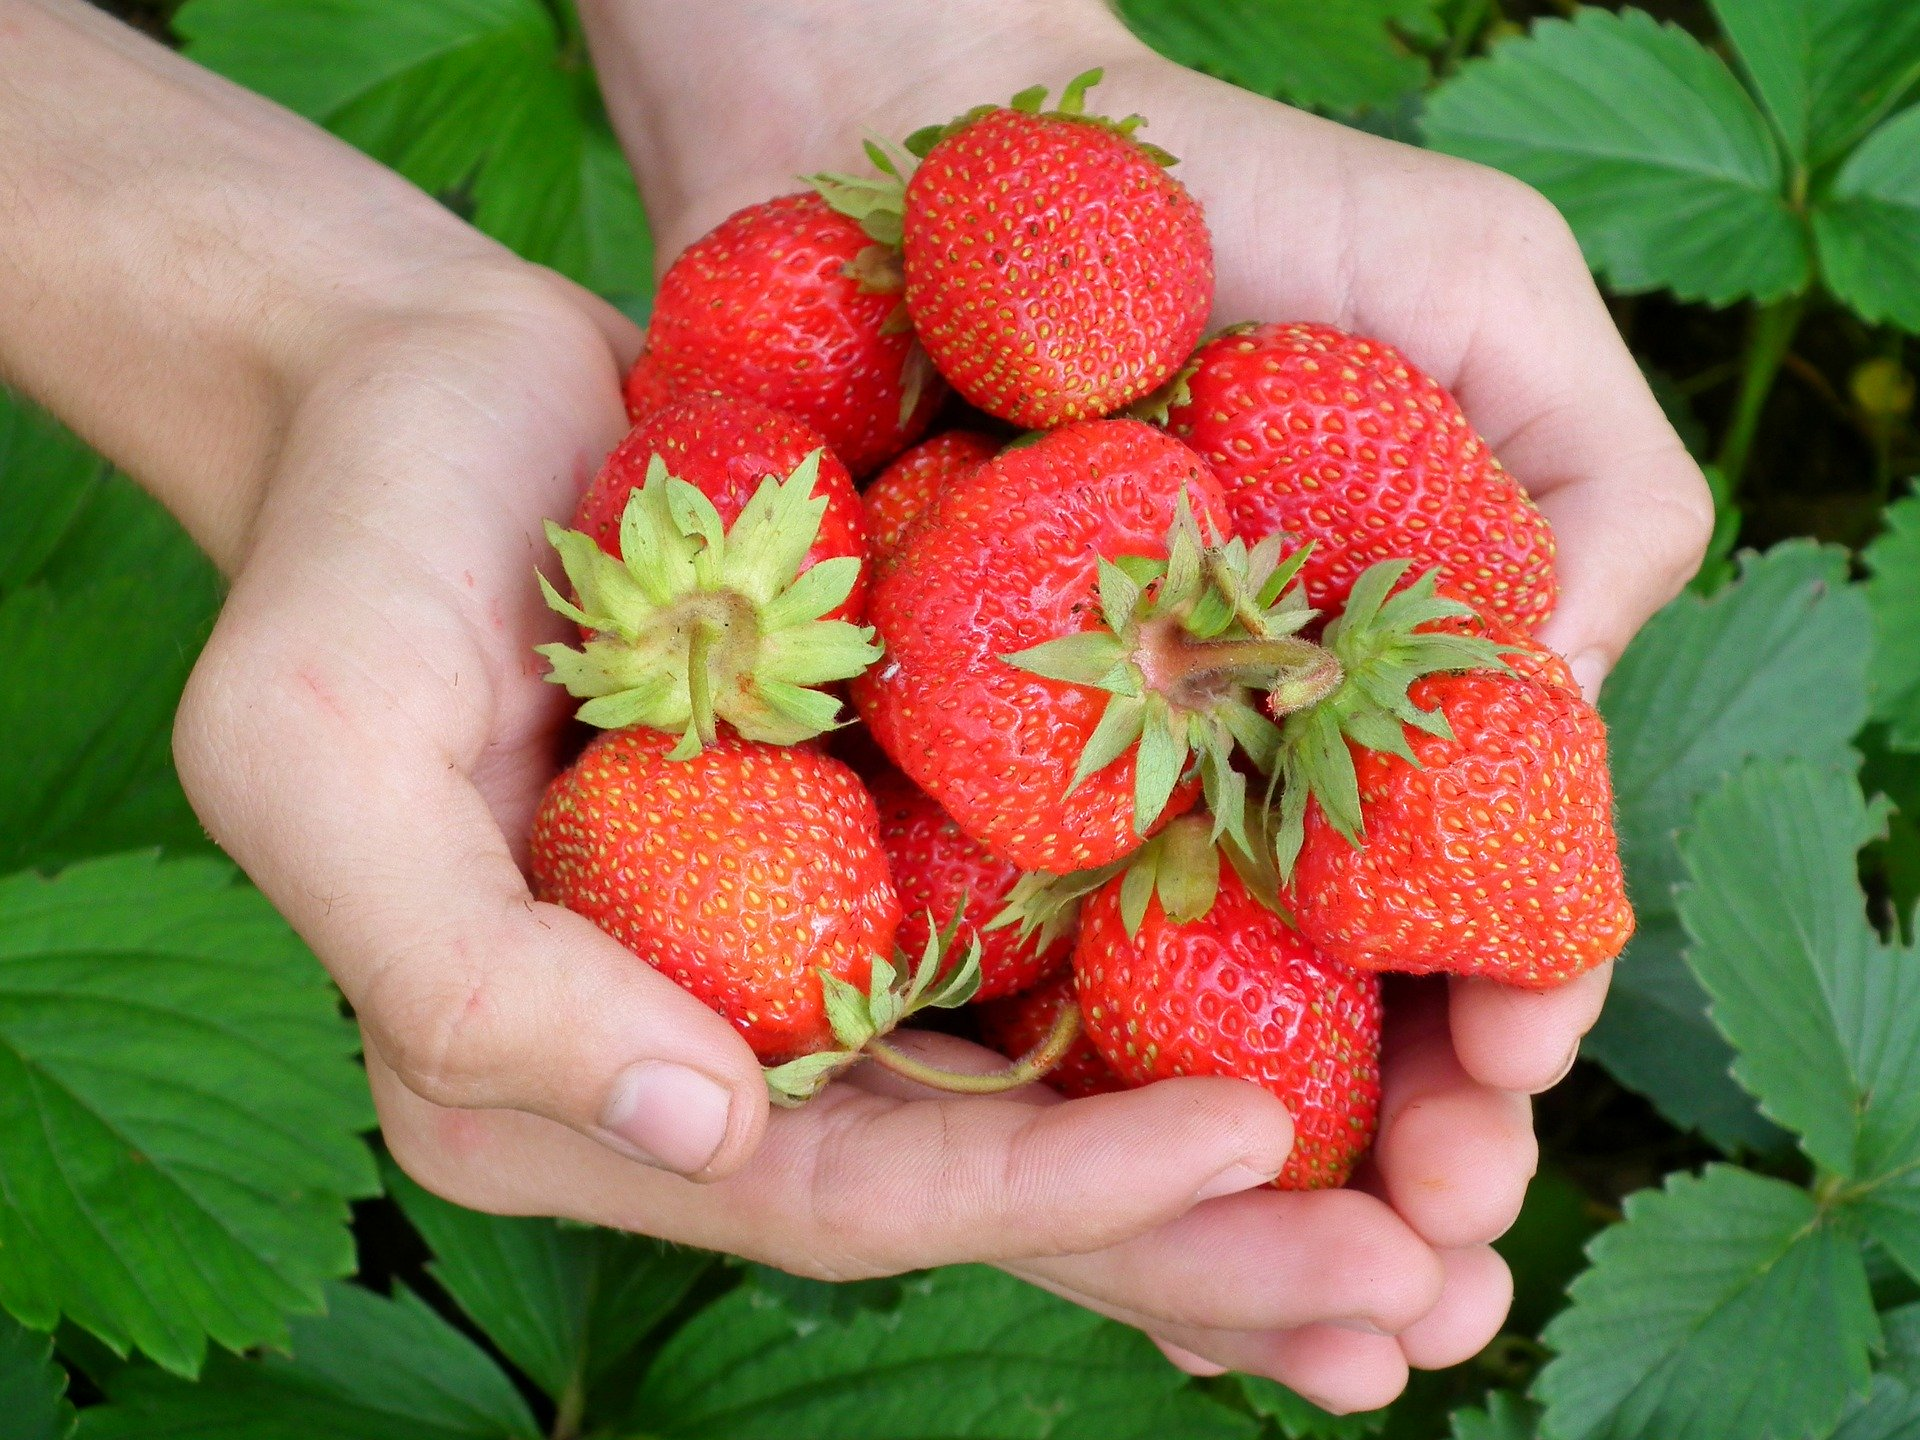 Strawberries provide a multitude of benefits for your gut.